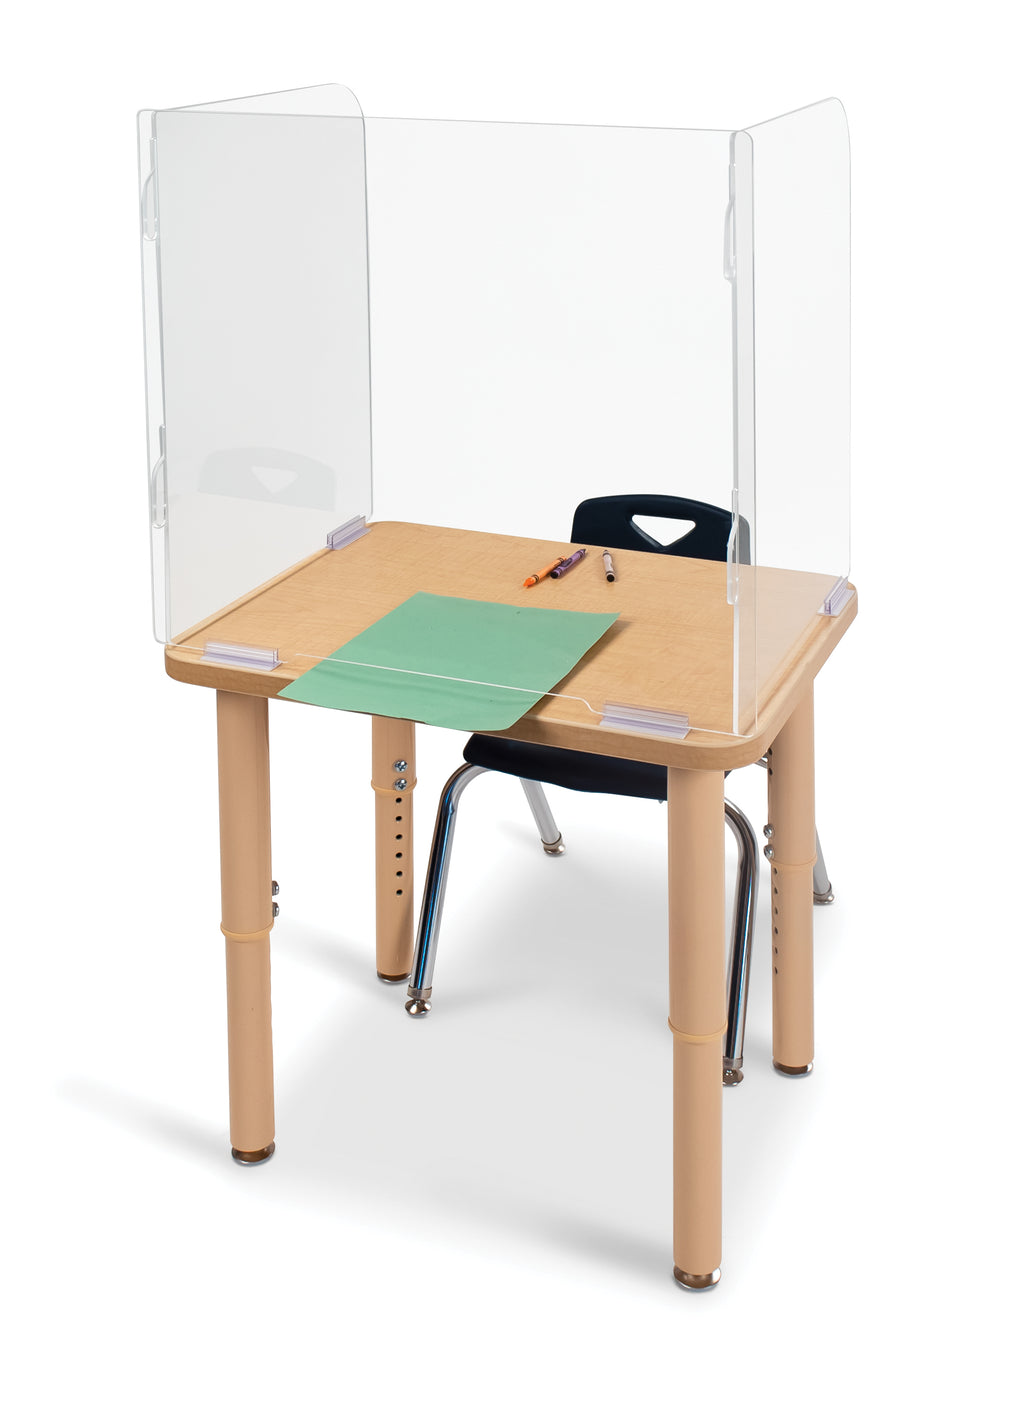 "5-Pack of See-Thru Student Desk Top Shields 23.5"" High"